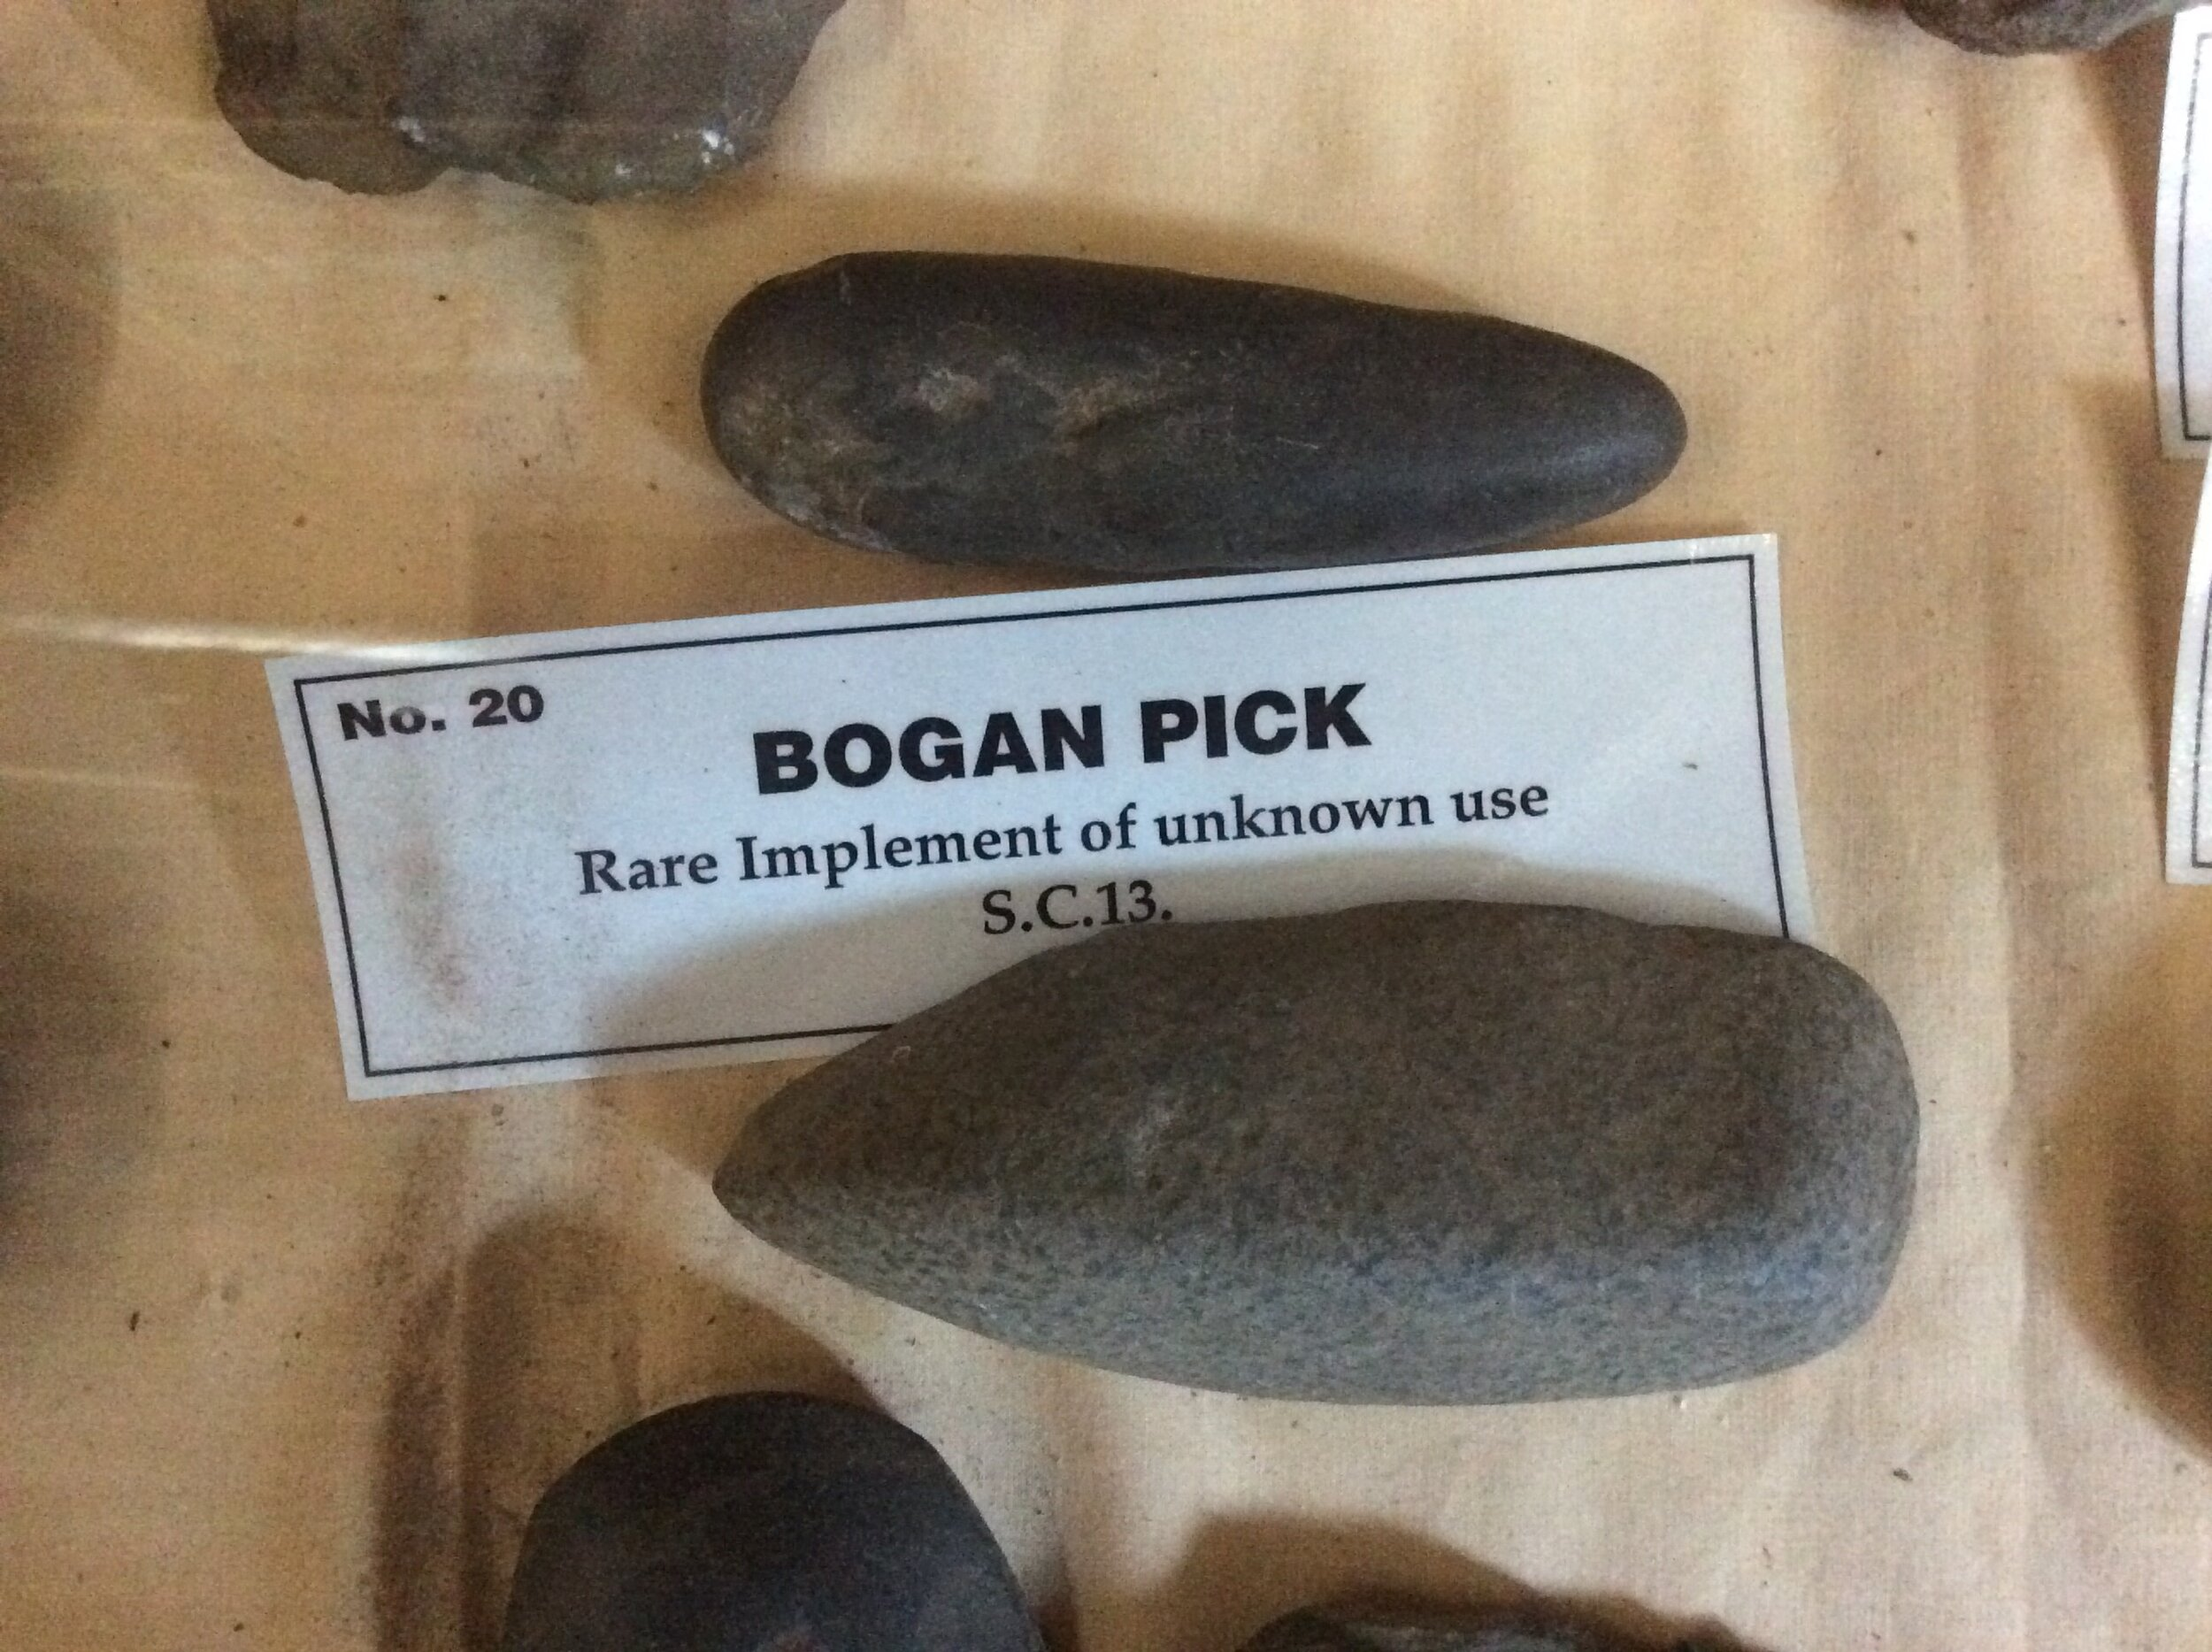 - Aboriginal stone artefacts in Gulgong Museum (NSW, Australia). It seems that there is no recorded knowledge, or even an Aboriginal oral history, as to what these rare and mysterious Bogan picks were actualy used for. If they were the soil-cultivating 'hoes' that Mr Pascoe claims, then there would have recorded explorer observations of Aboriginal women tilling the soil with a hafted (wooden-handled) Bogan pick and many more would have been collected with their handles in place. In addition, the local Aborigines would have told the early explorers and ethnographers about them and their use. In reality, the historical record is silent, leading us to conclude they were not used as Mr Pascoe would have us believe.